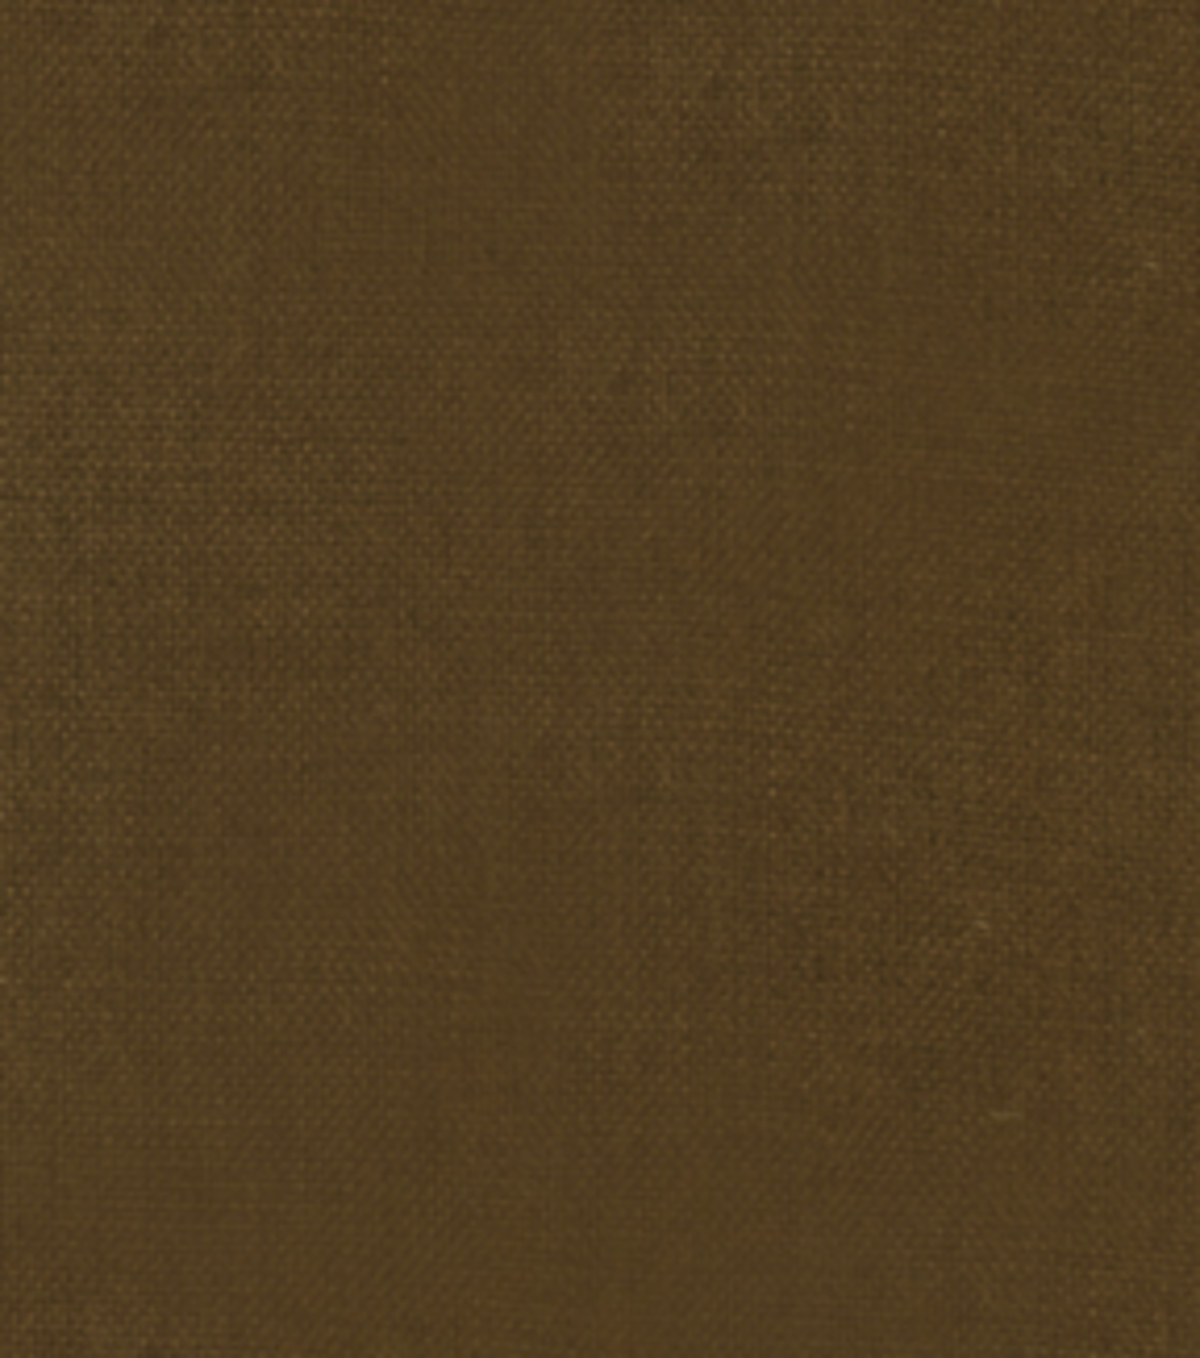 Home Decor 8\u0022x8\u0022 Fabric Swatch-Signature Series Sigourney Hickory